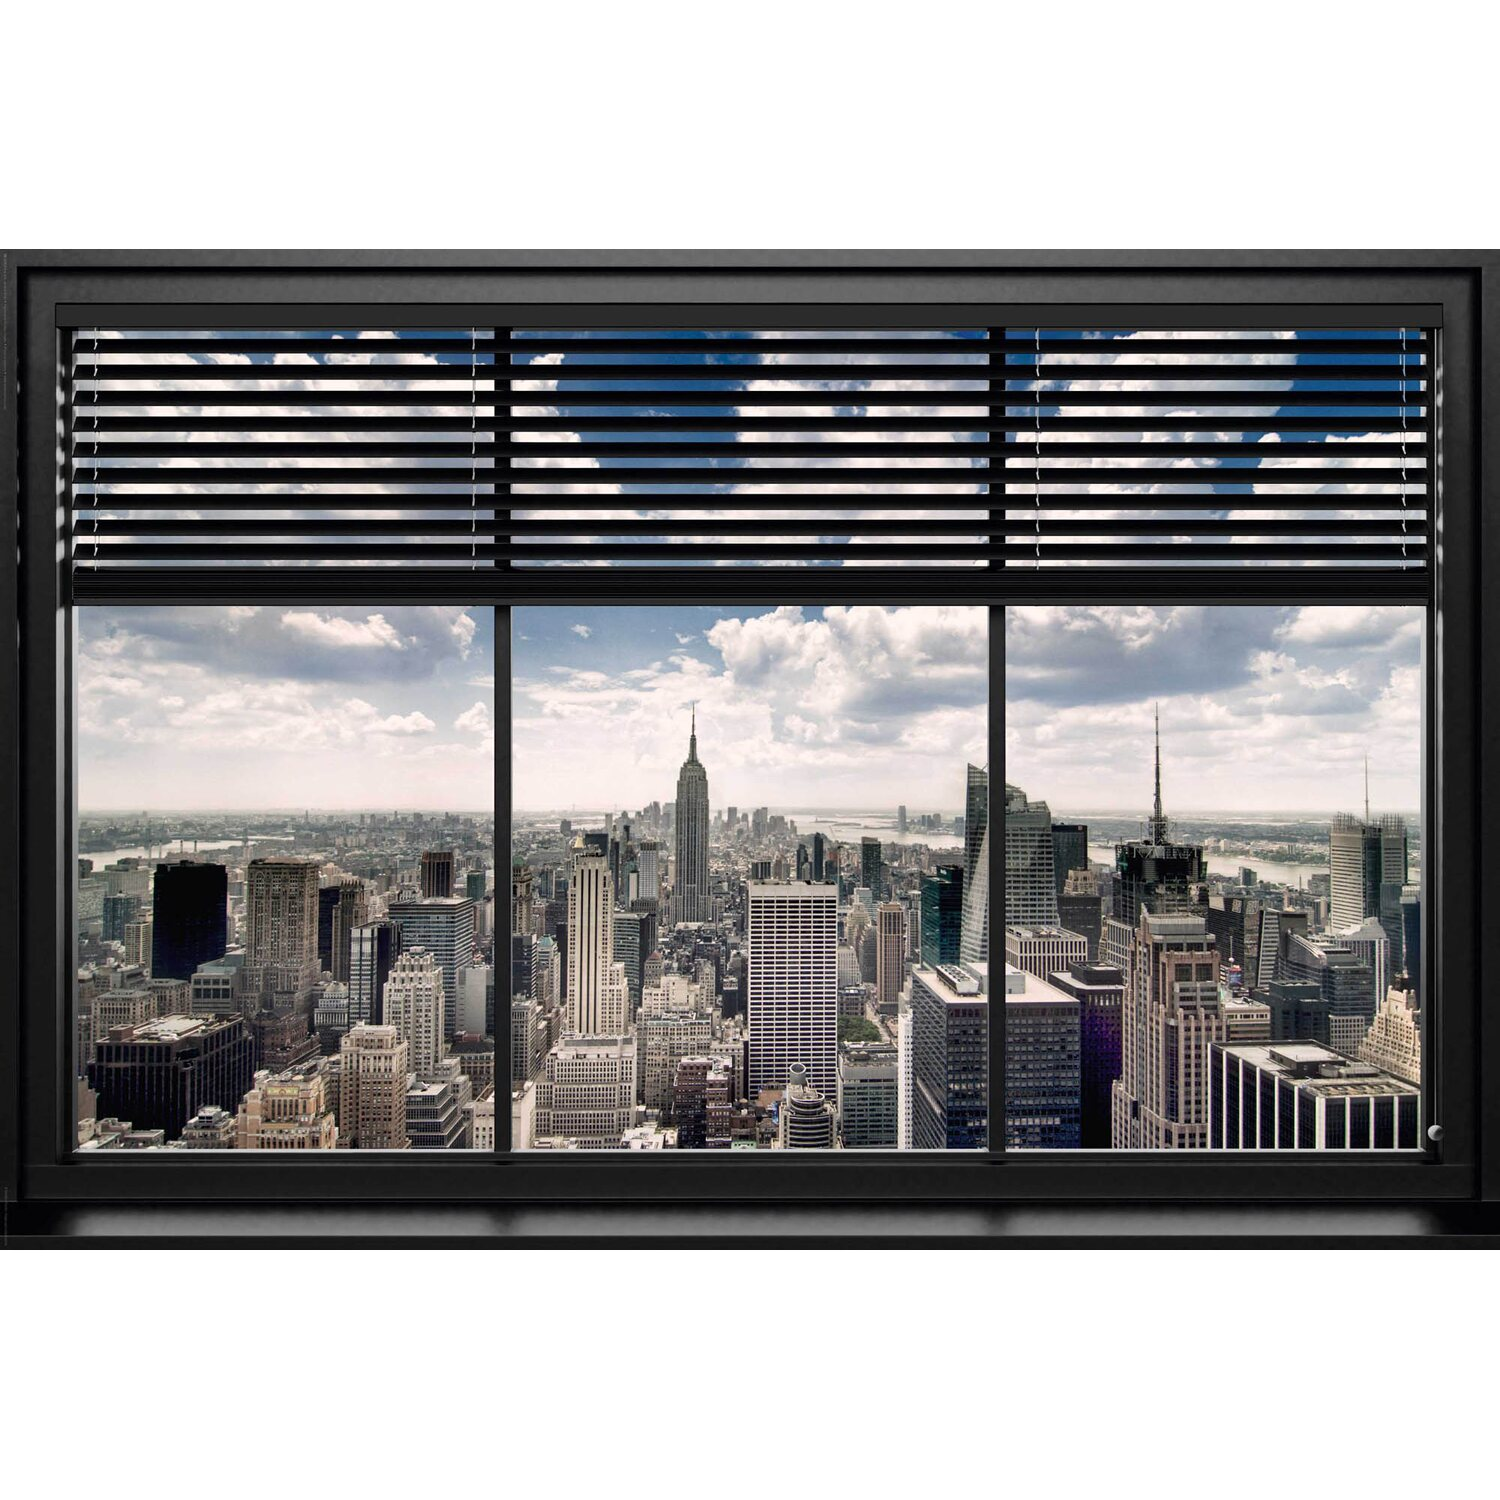 wandbild new york fenster lamellen 90 cm x 60 cm kaufen bei obi. Black Bedroom Furniture Sets. Home Design Ideas